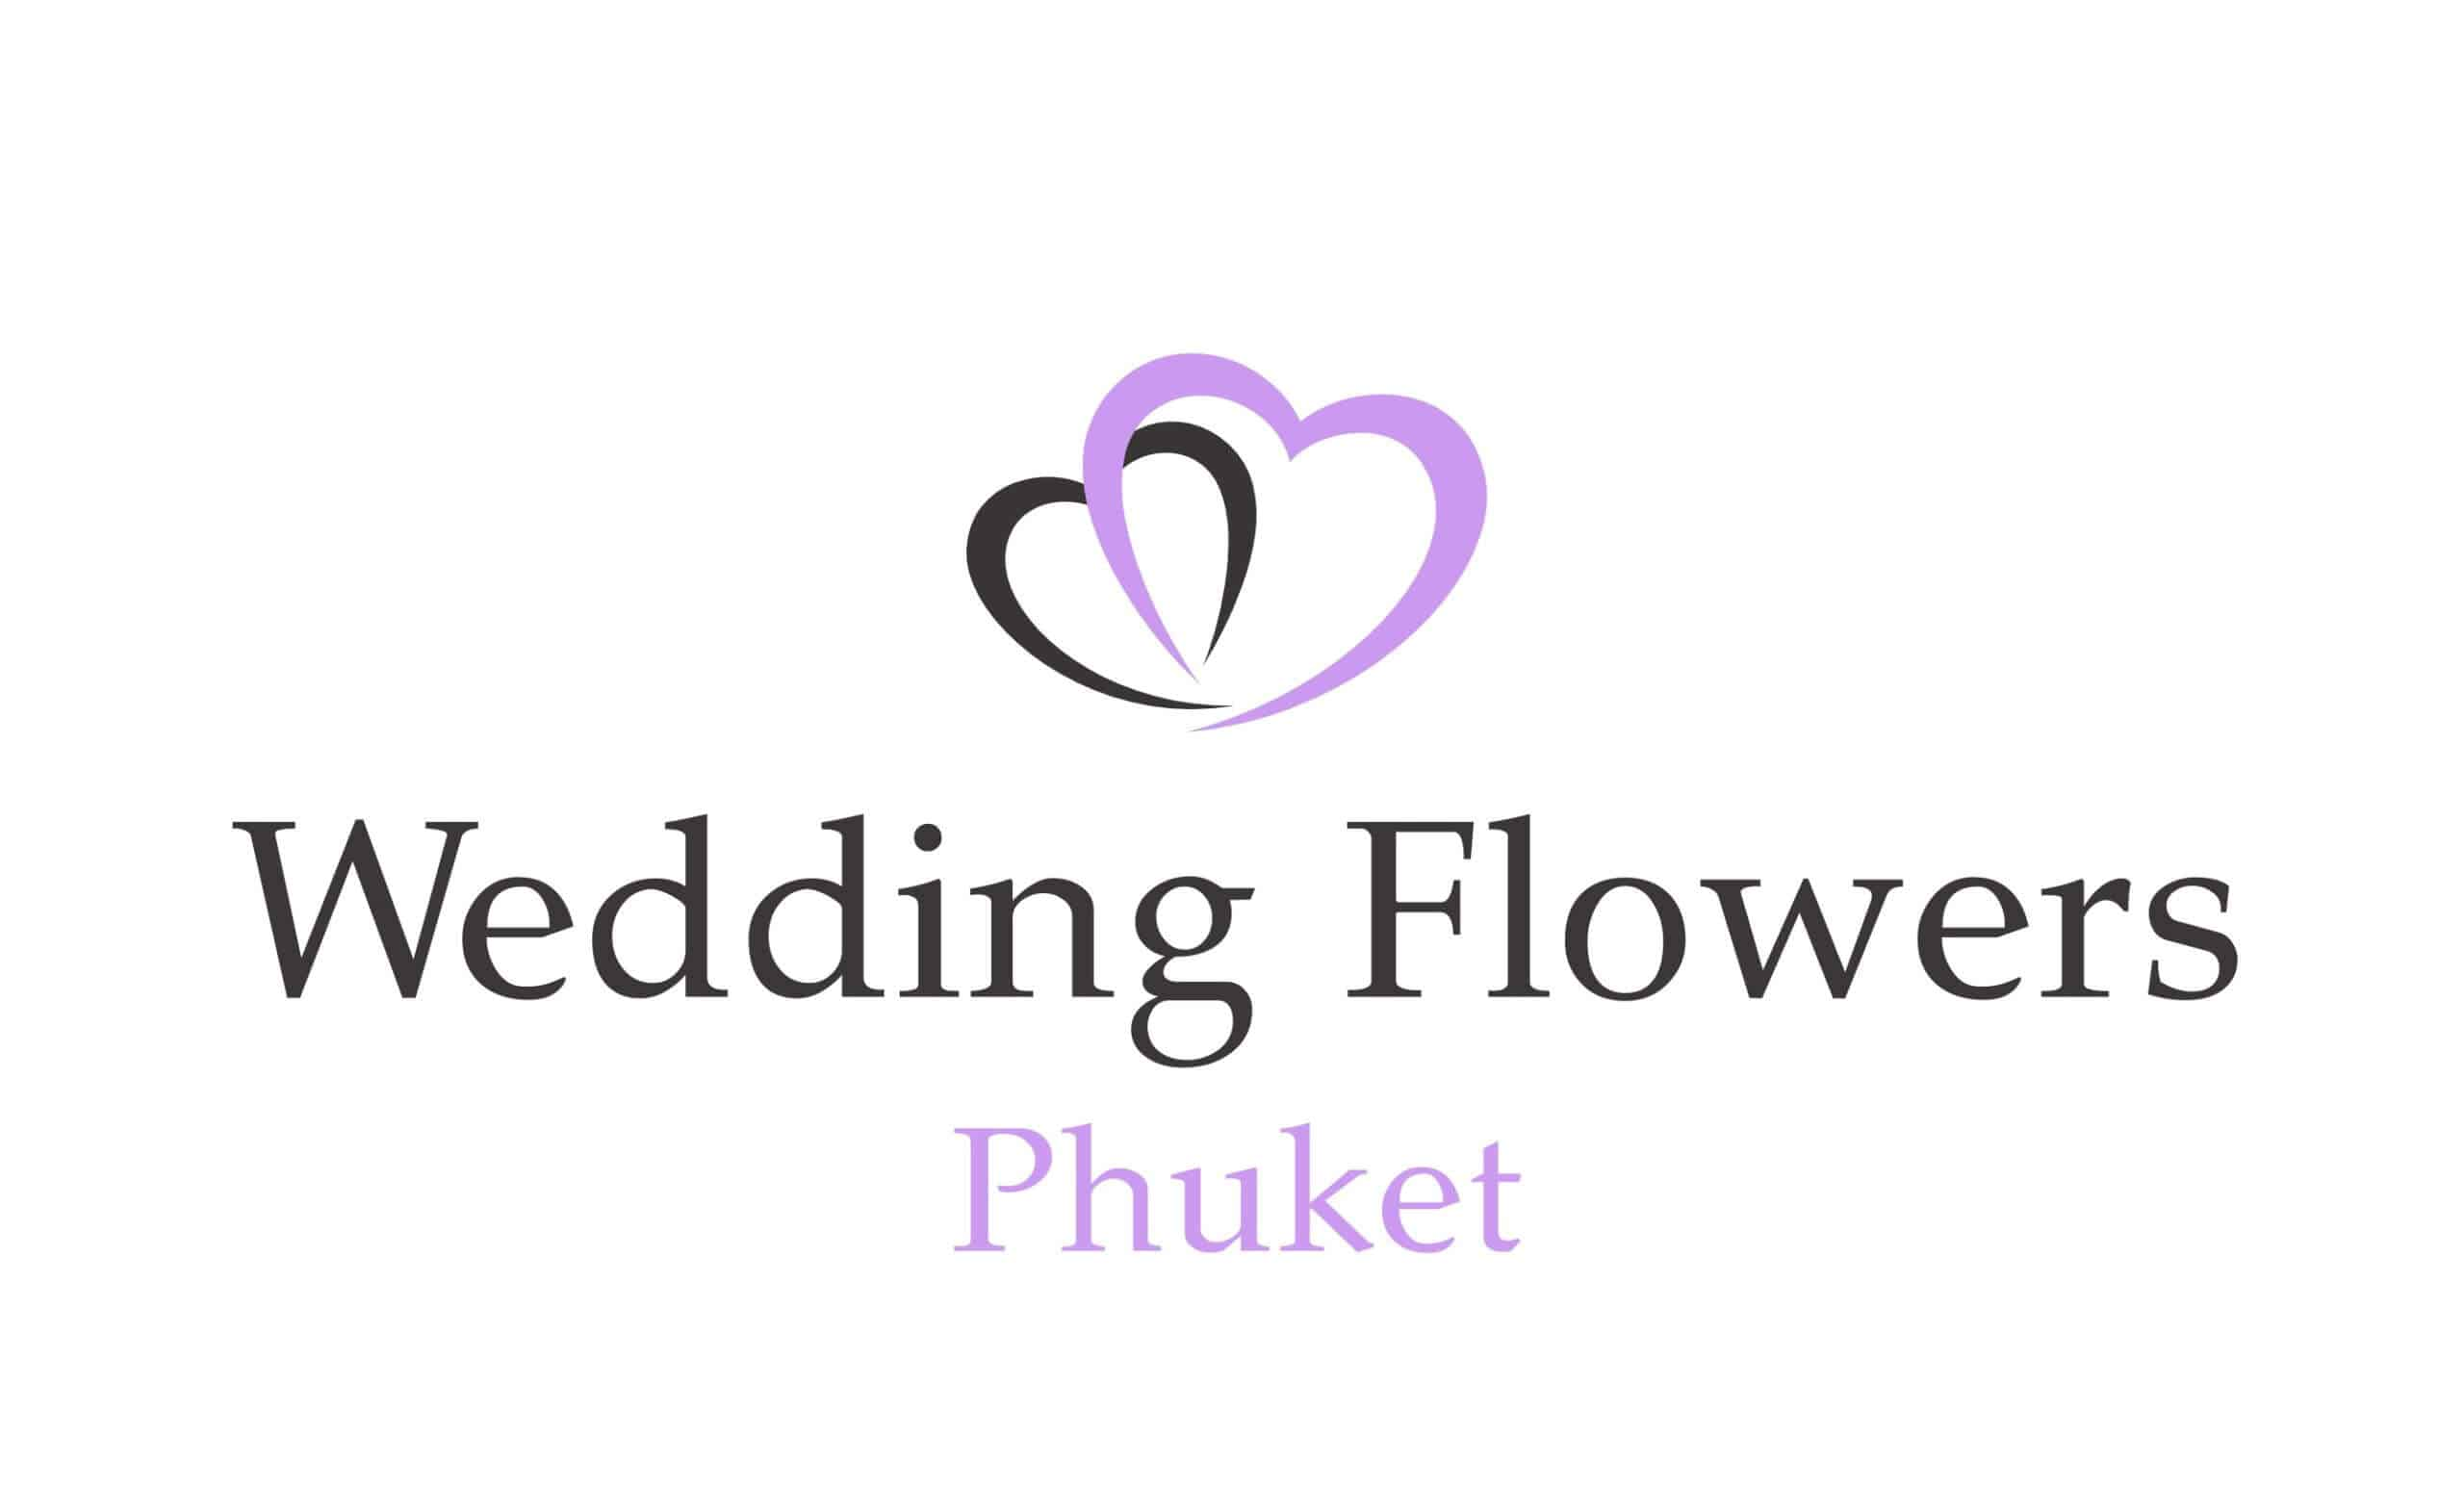 Wedding-flowers-phuket-scaled